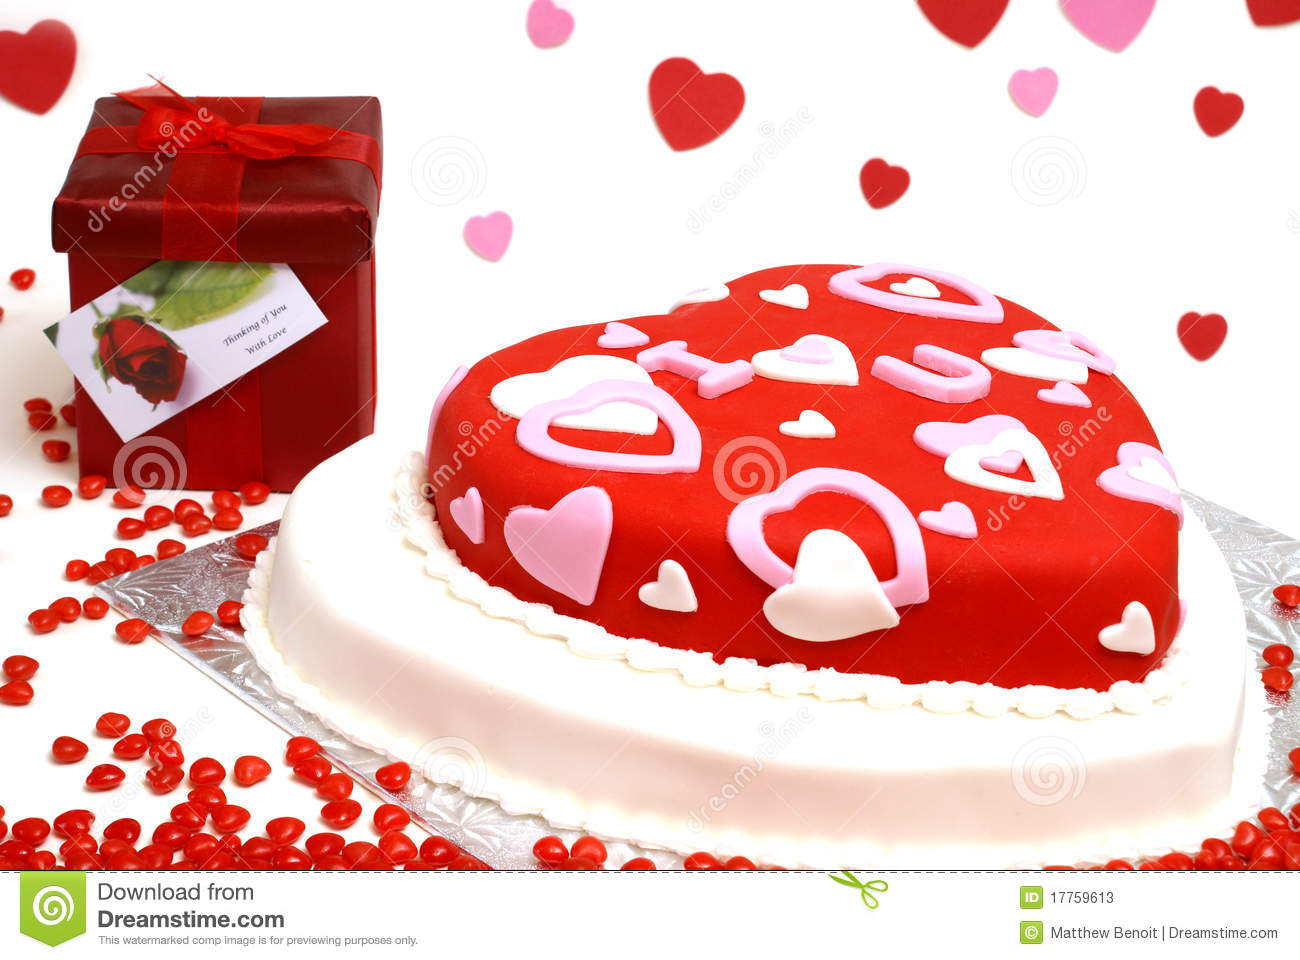 Heart Shaped Cake Stock Photos : Heart Shaped Cake Stock Photos - Image: 17759613